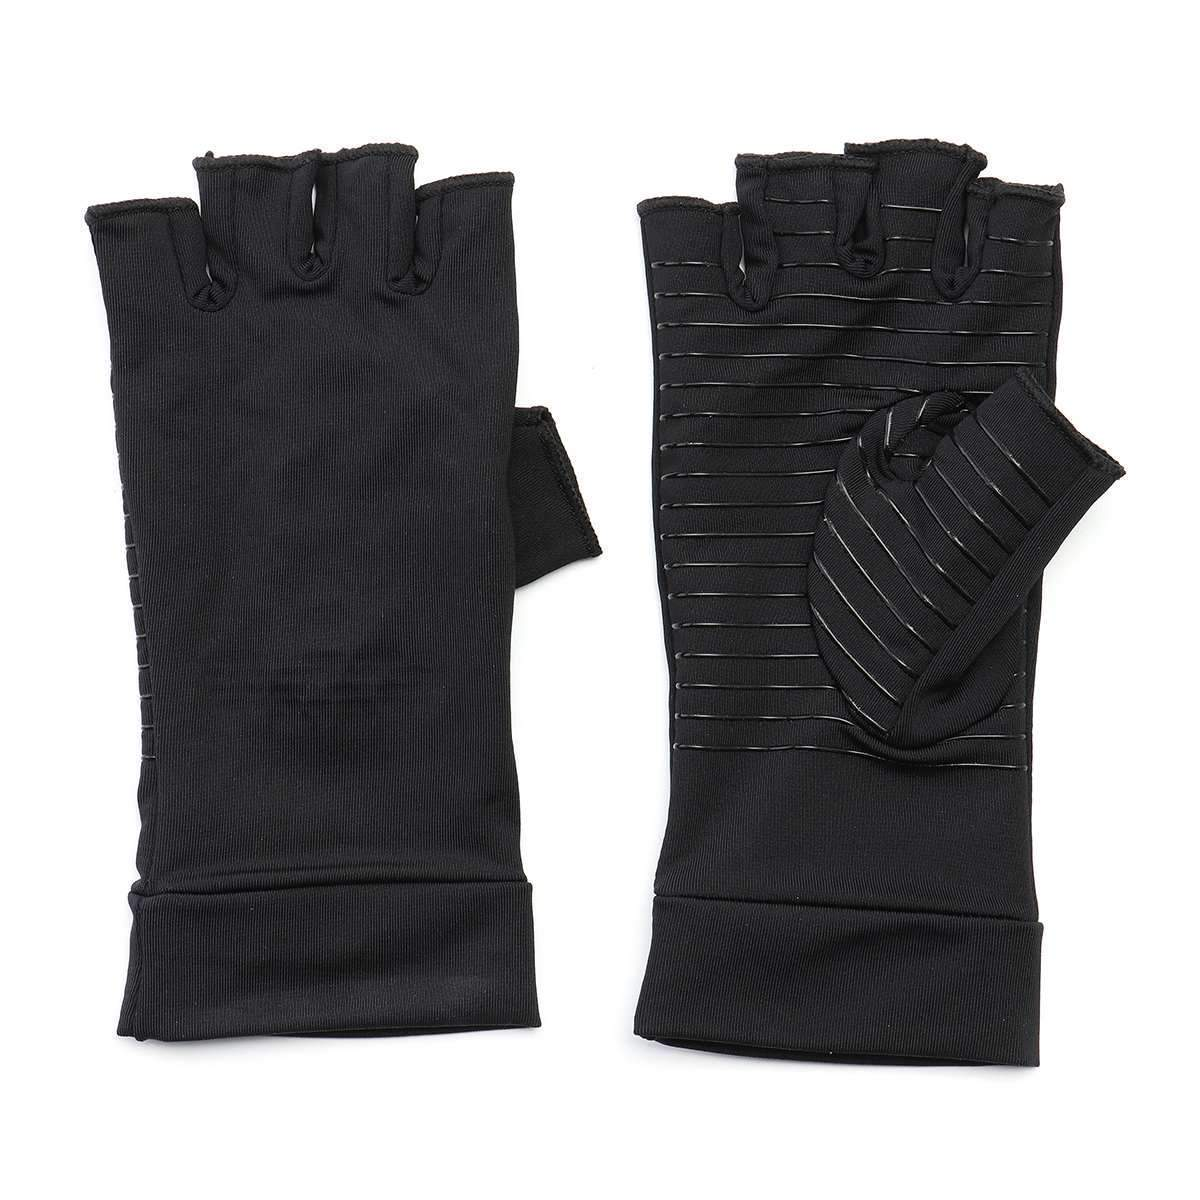 Copper Arthritis Compression Gloves